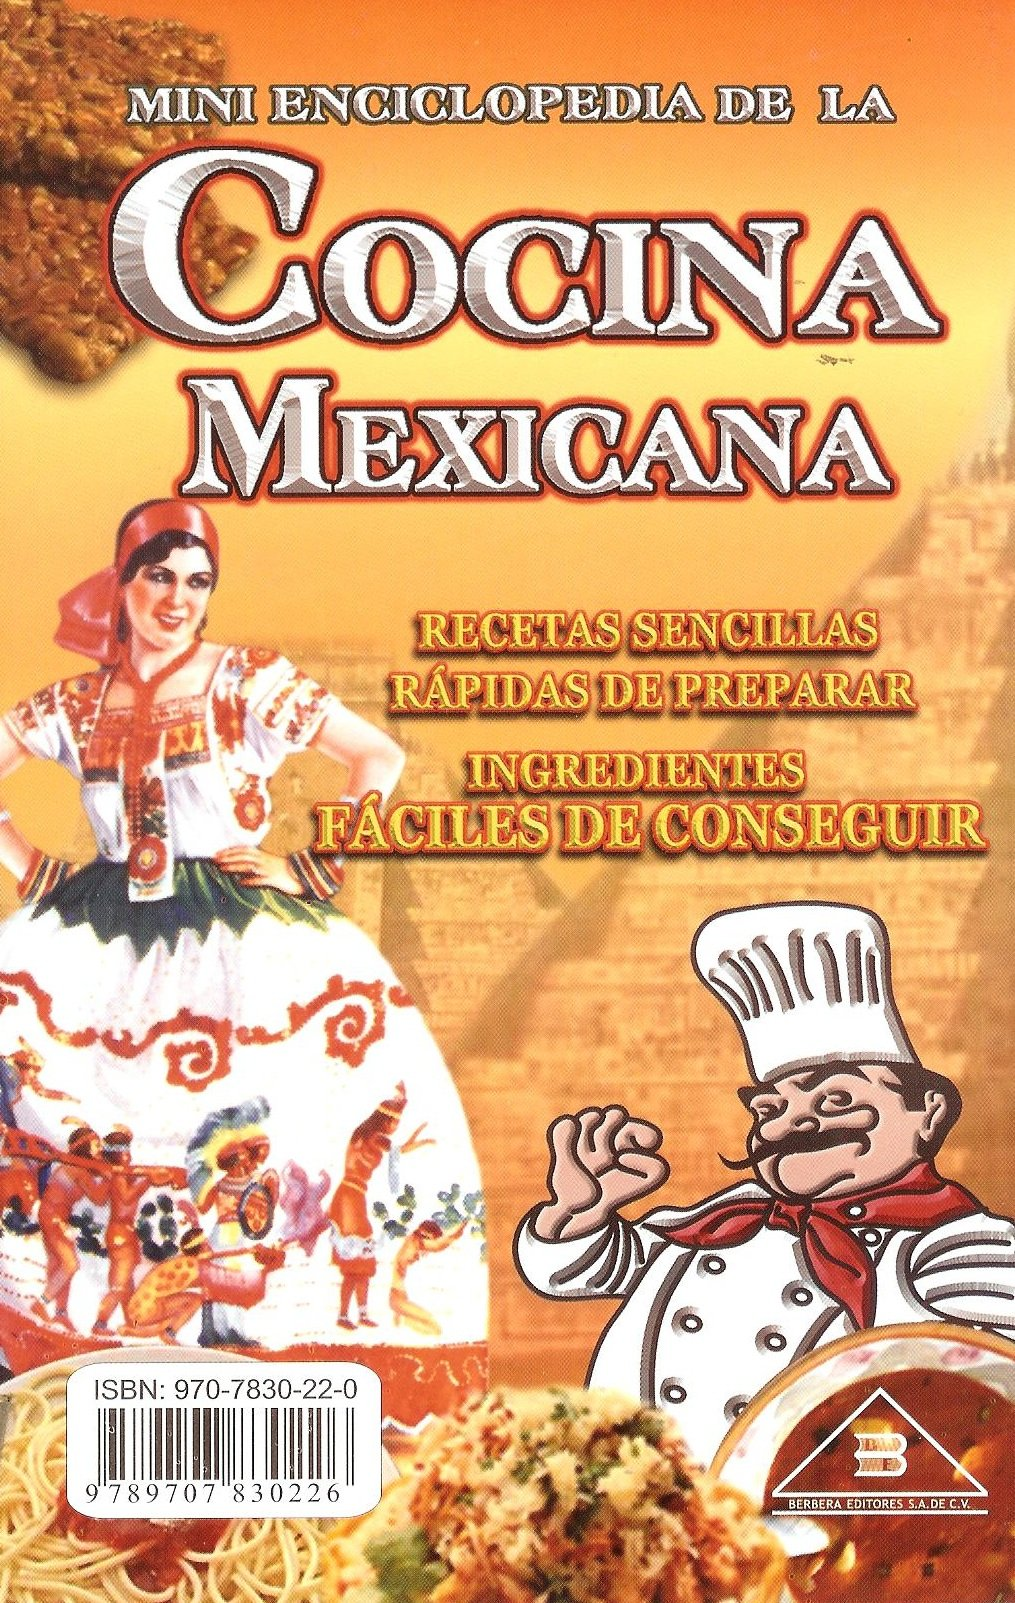 Cocina Mexicana, Mini Enciclopedia (Spanish Edition): Irma Bolanios, Berbera Editores: 9789707830226: Amazon.com: Books